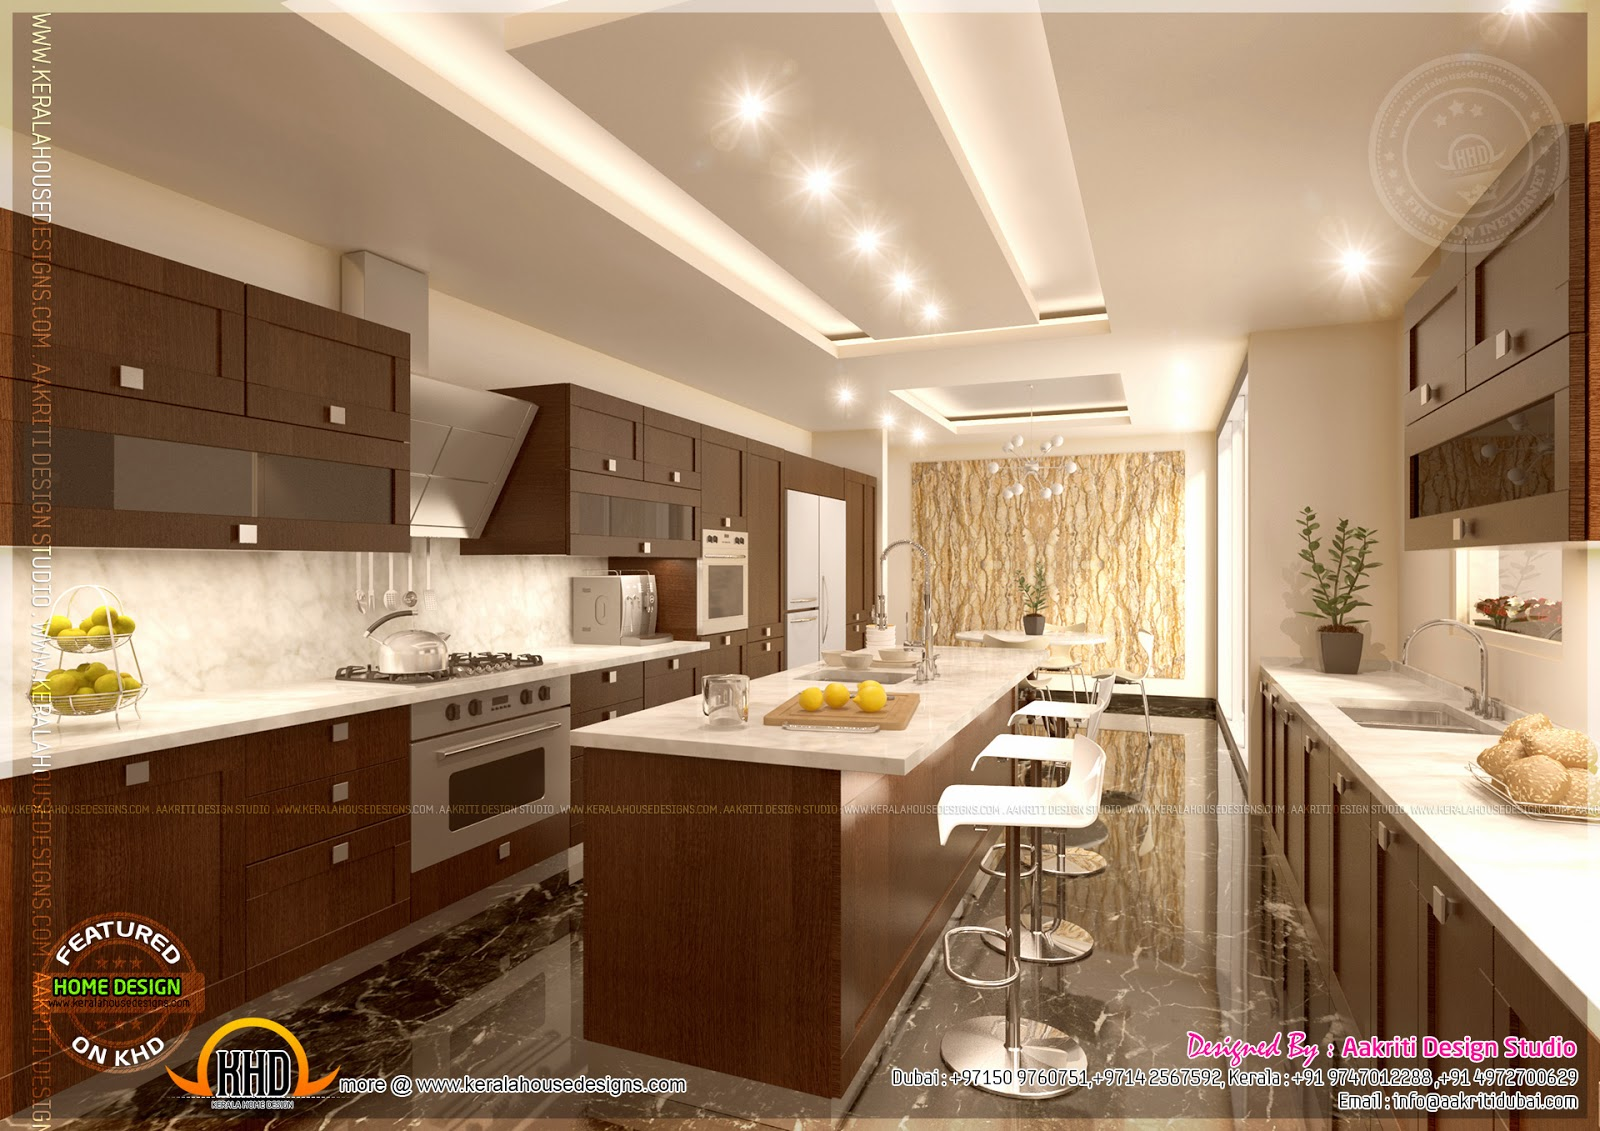 Kitchen designs by aakriti design studio kerala home for Home design kitchen decor